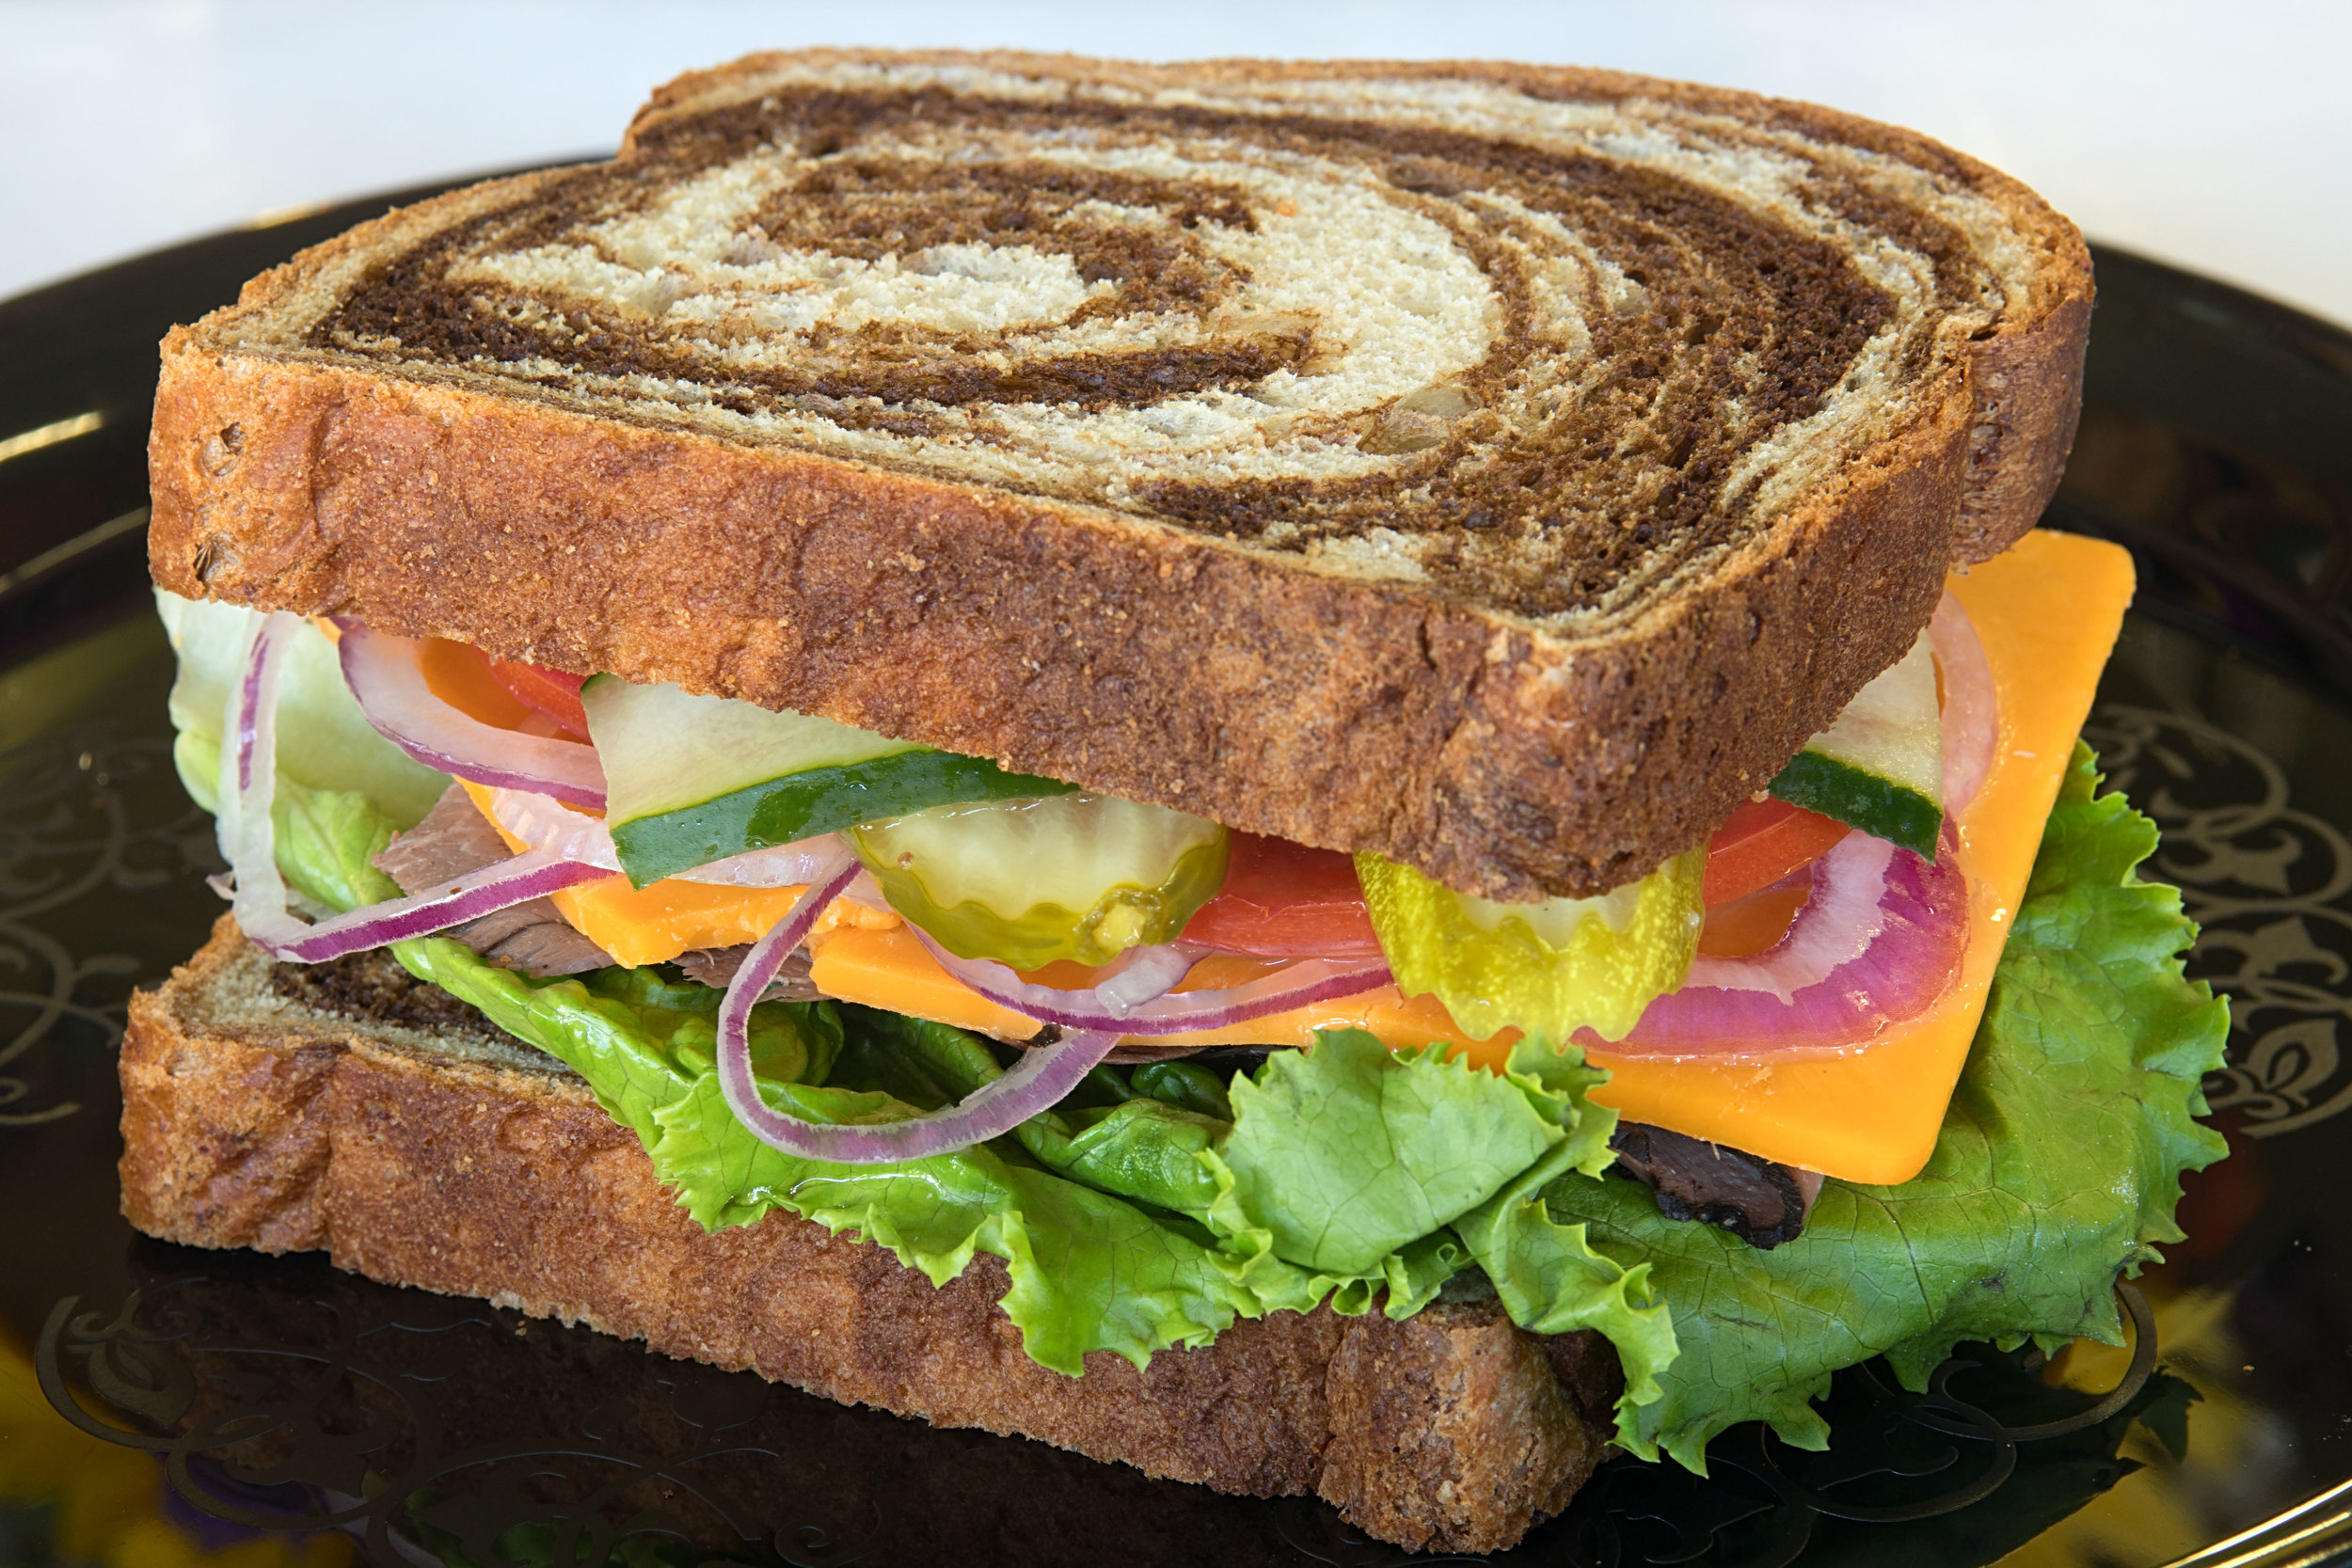 sandwich_RB and Ched on rye.jpg